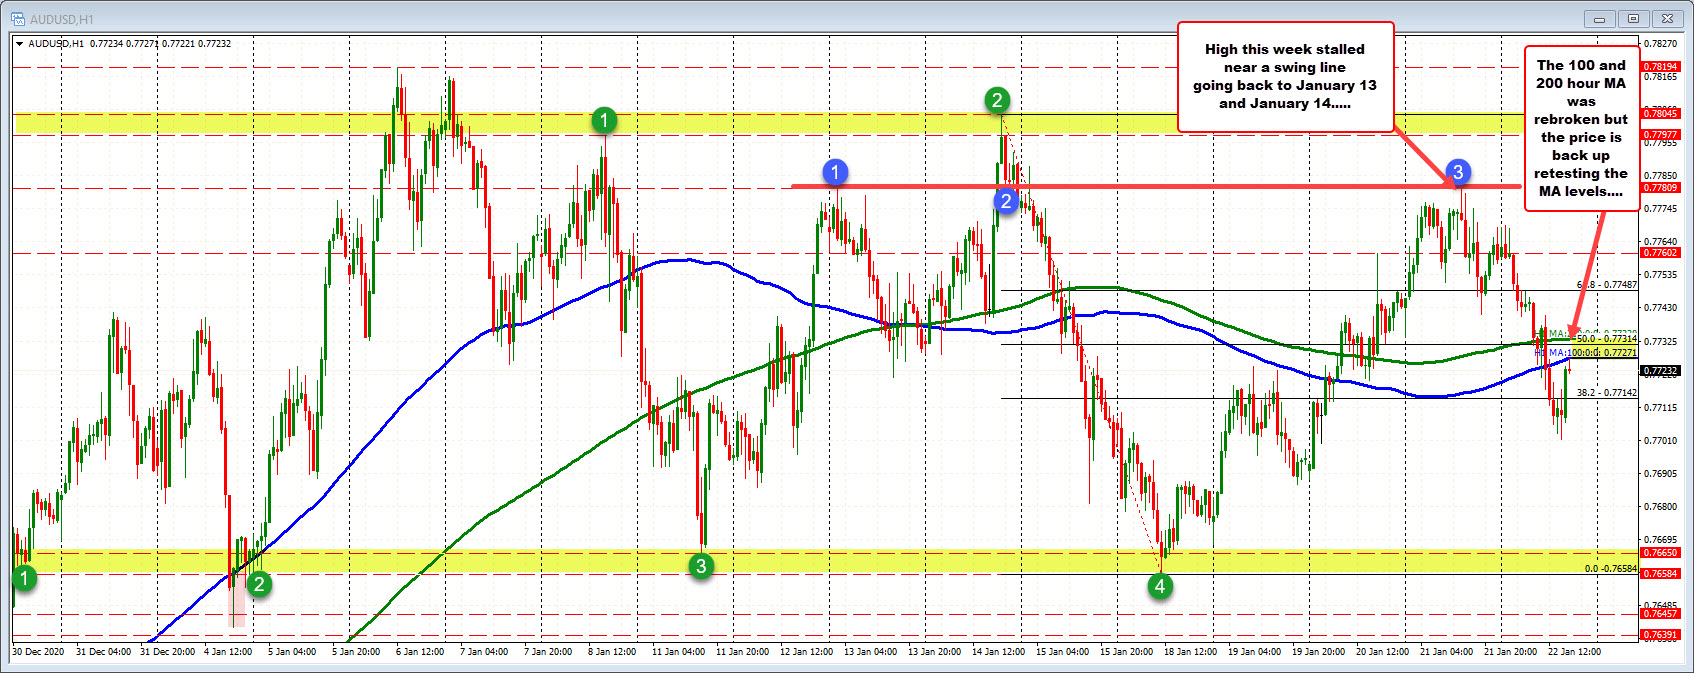 AUDUSD trades back below the 200/100 hour MAs in